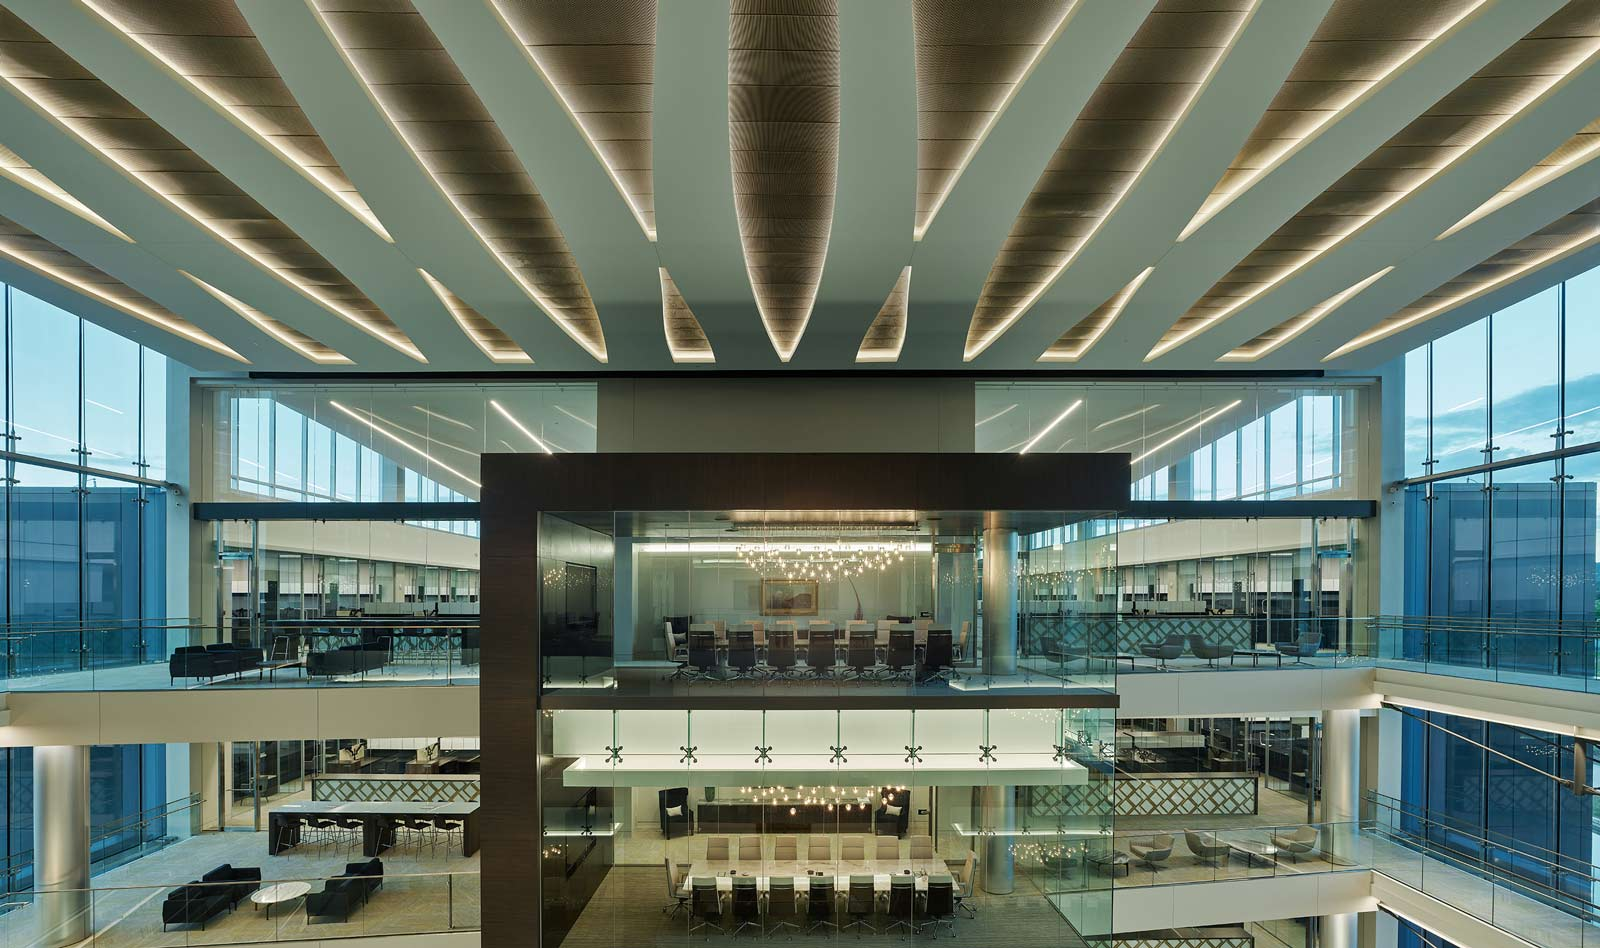 Banker Wire Mesh Adorns Expansive Ceiling Installation Anchoring Five-Story Atrium